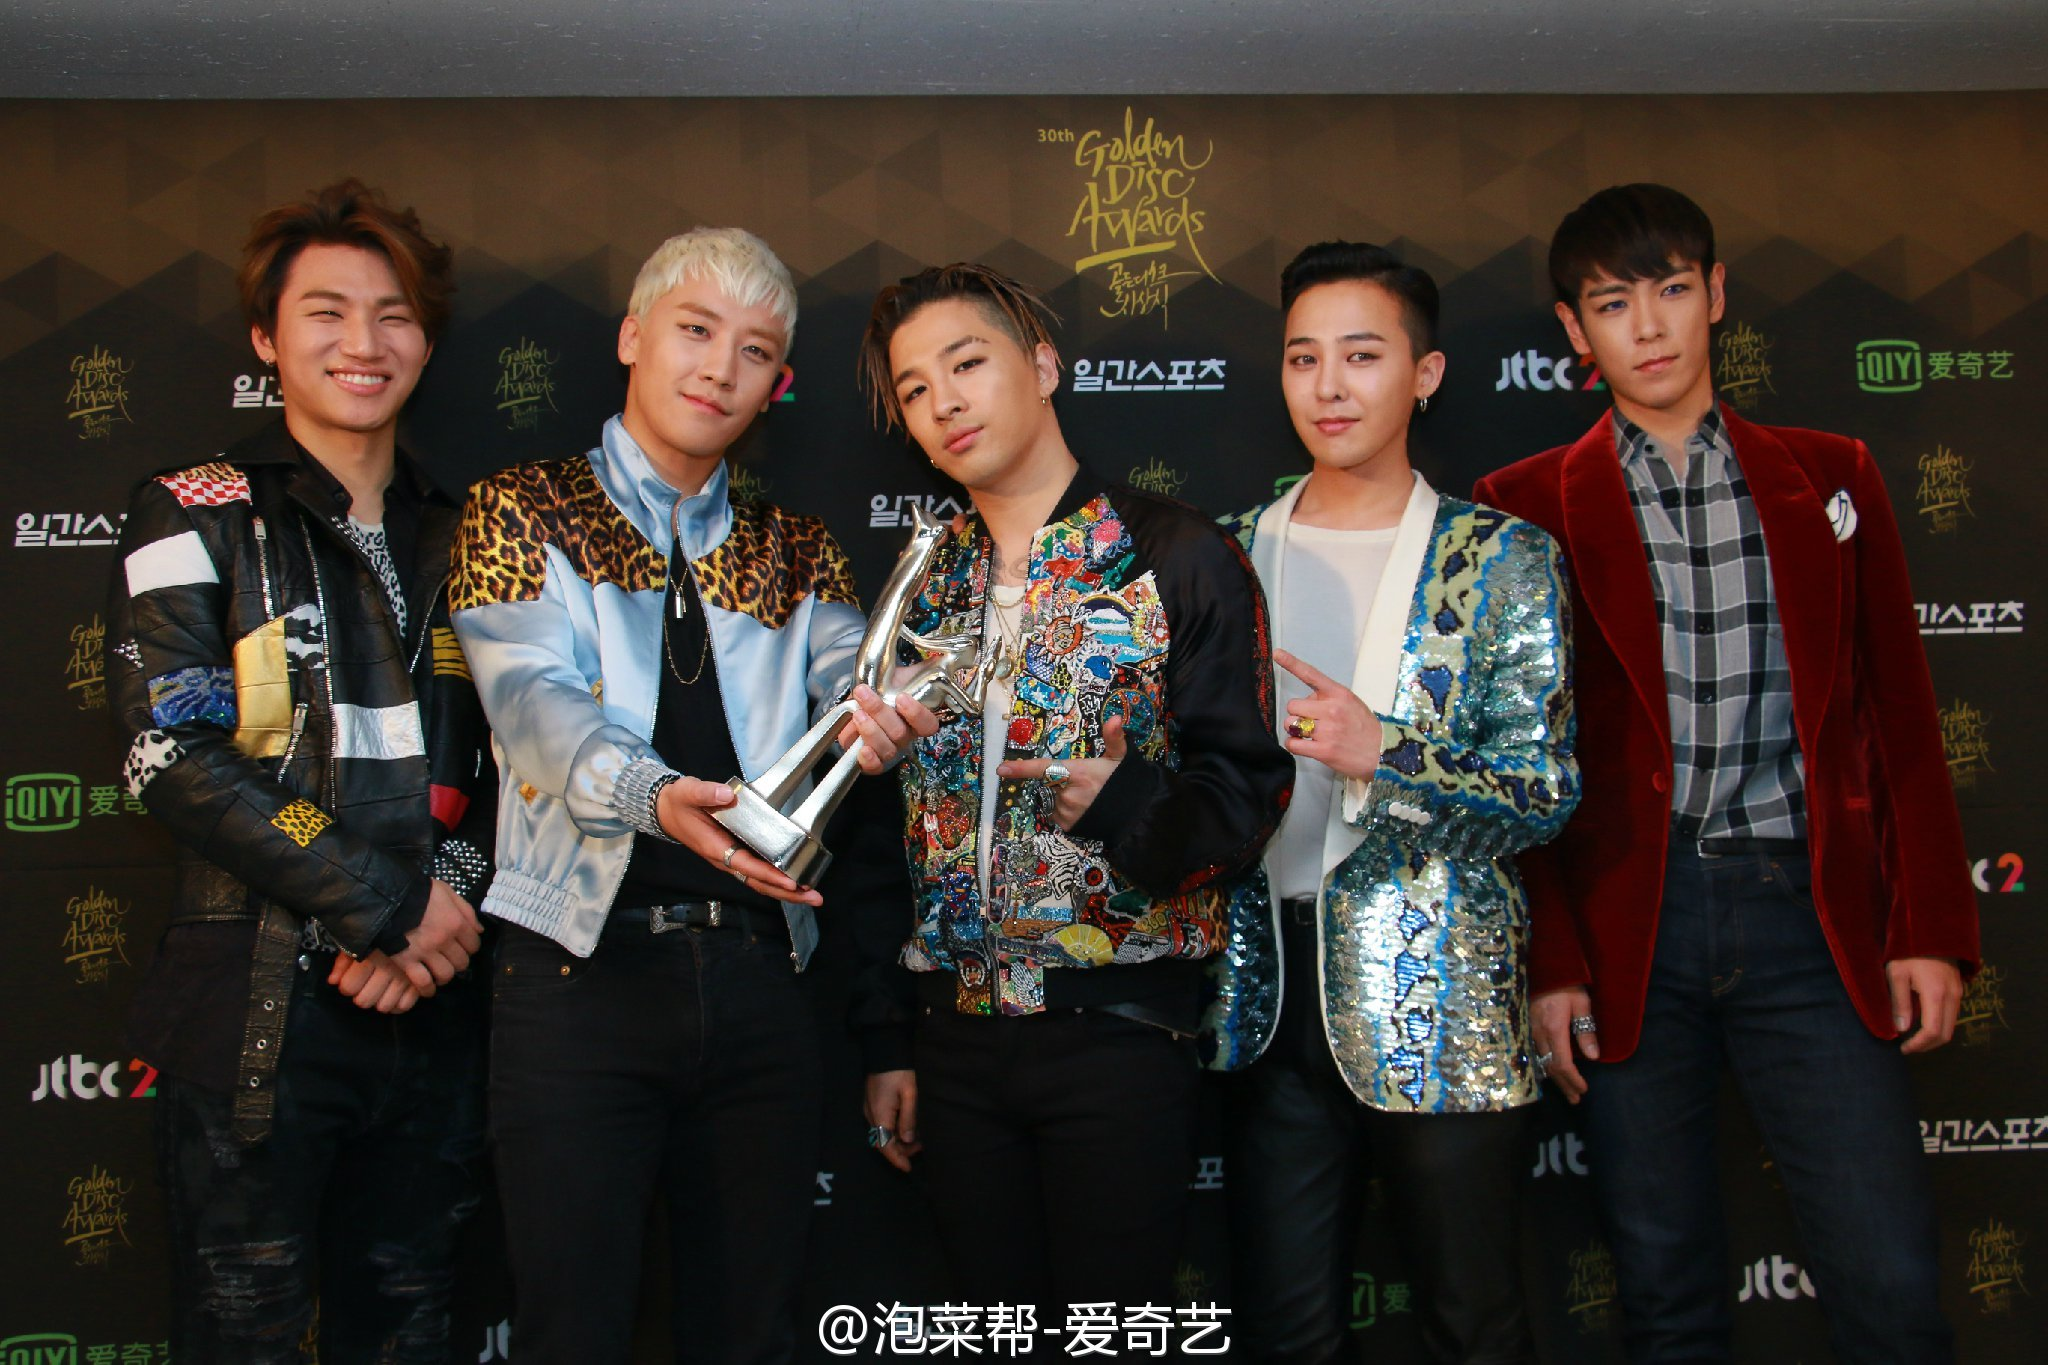 BIGBANG - Golden Disk Awards - Backstage - 20jan2016 - 泡菜帮-爱奇艺 - 12